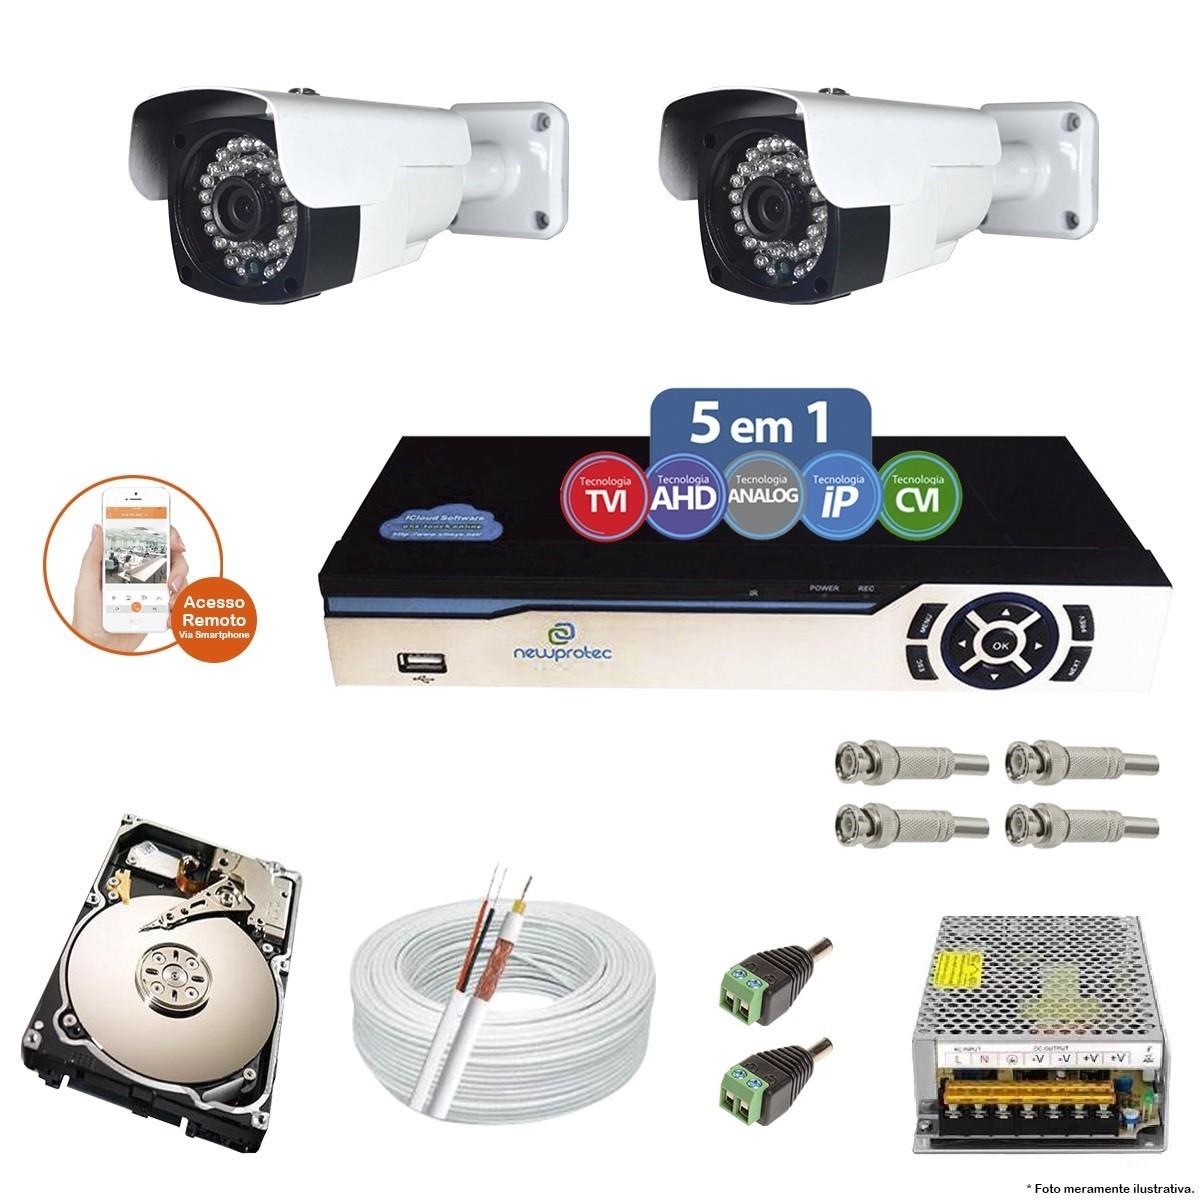 Kit Cftv 2 Câmeras AHD-M 2.0MP 720p 3,6mm DVR 4 Canais Newprotec + HD 500GB